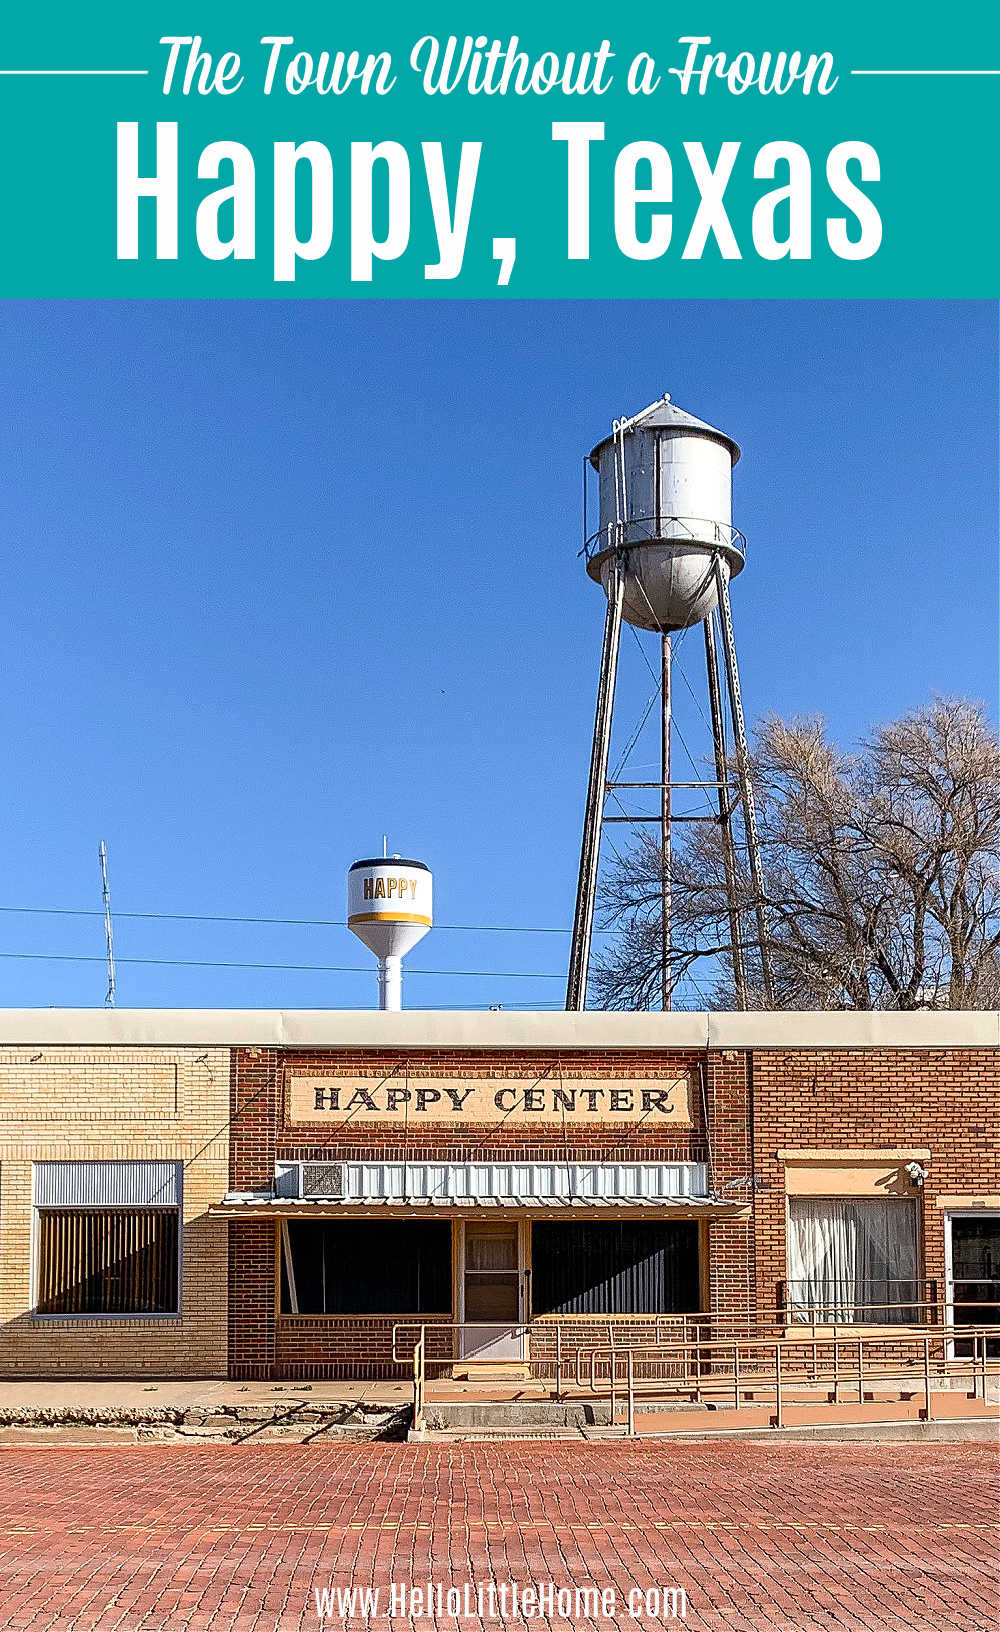 The Happy Center and two water towers located in Happy, Texas.